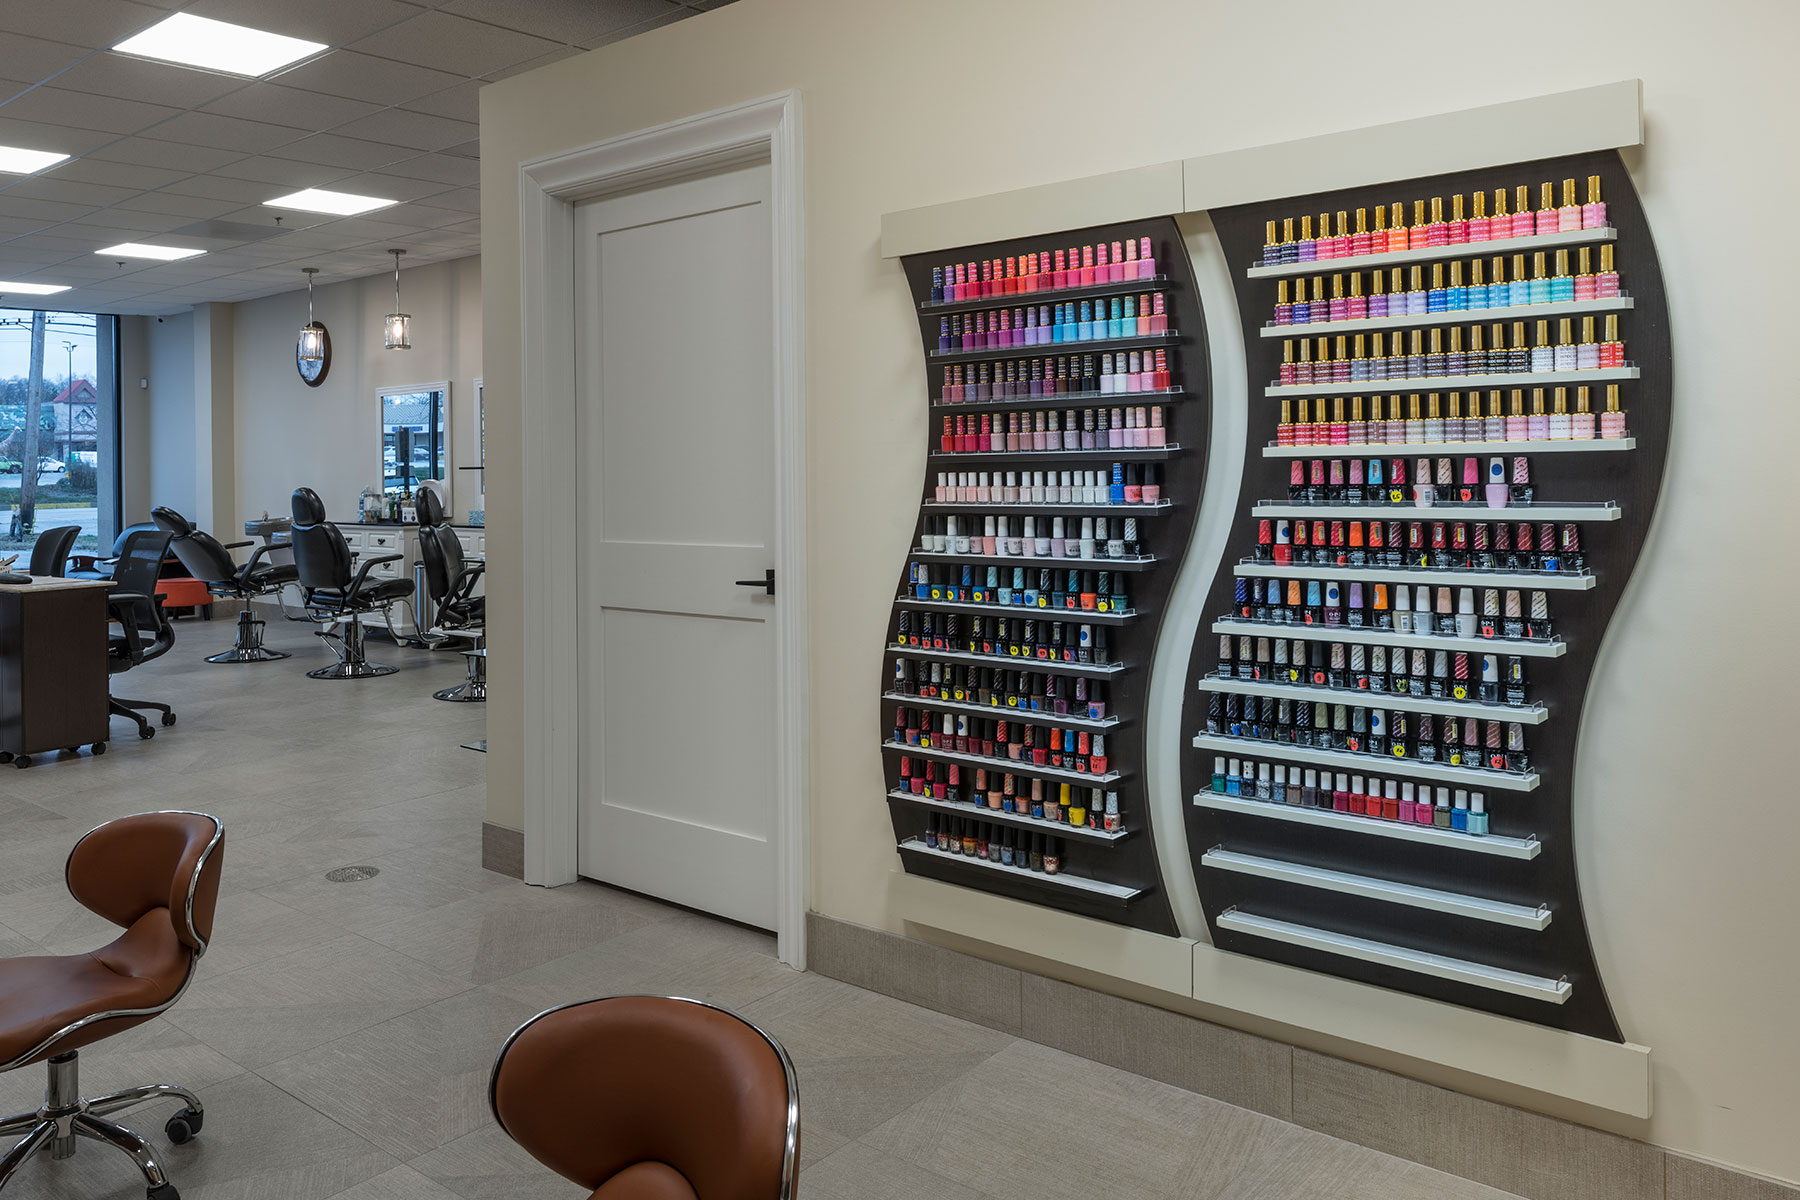 Nail Polish Selection - Hollywood Trendz Hair & Spa Salon, Addison Custom Home. America's Custom Home Builders: New Construction, Remodeling, Restoration Services. Residential and Commercial.